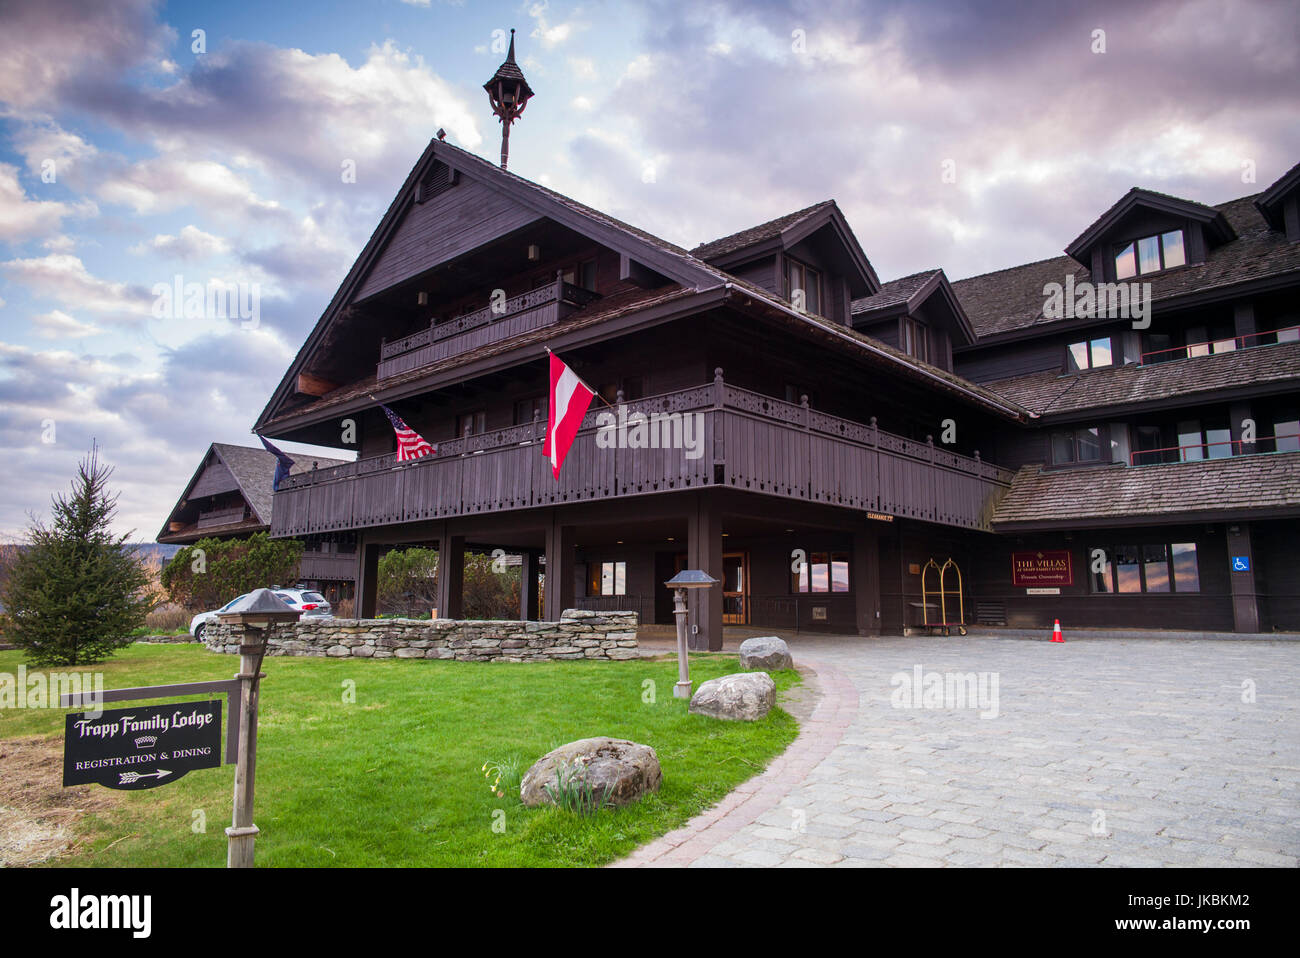 USA, Vermont, Stowe, Trapp Family Lodge, hotel owned by the von Trapp Family - Stock Image